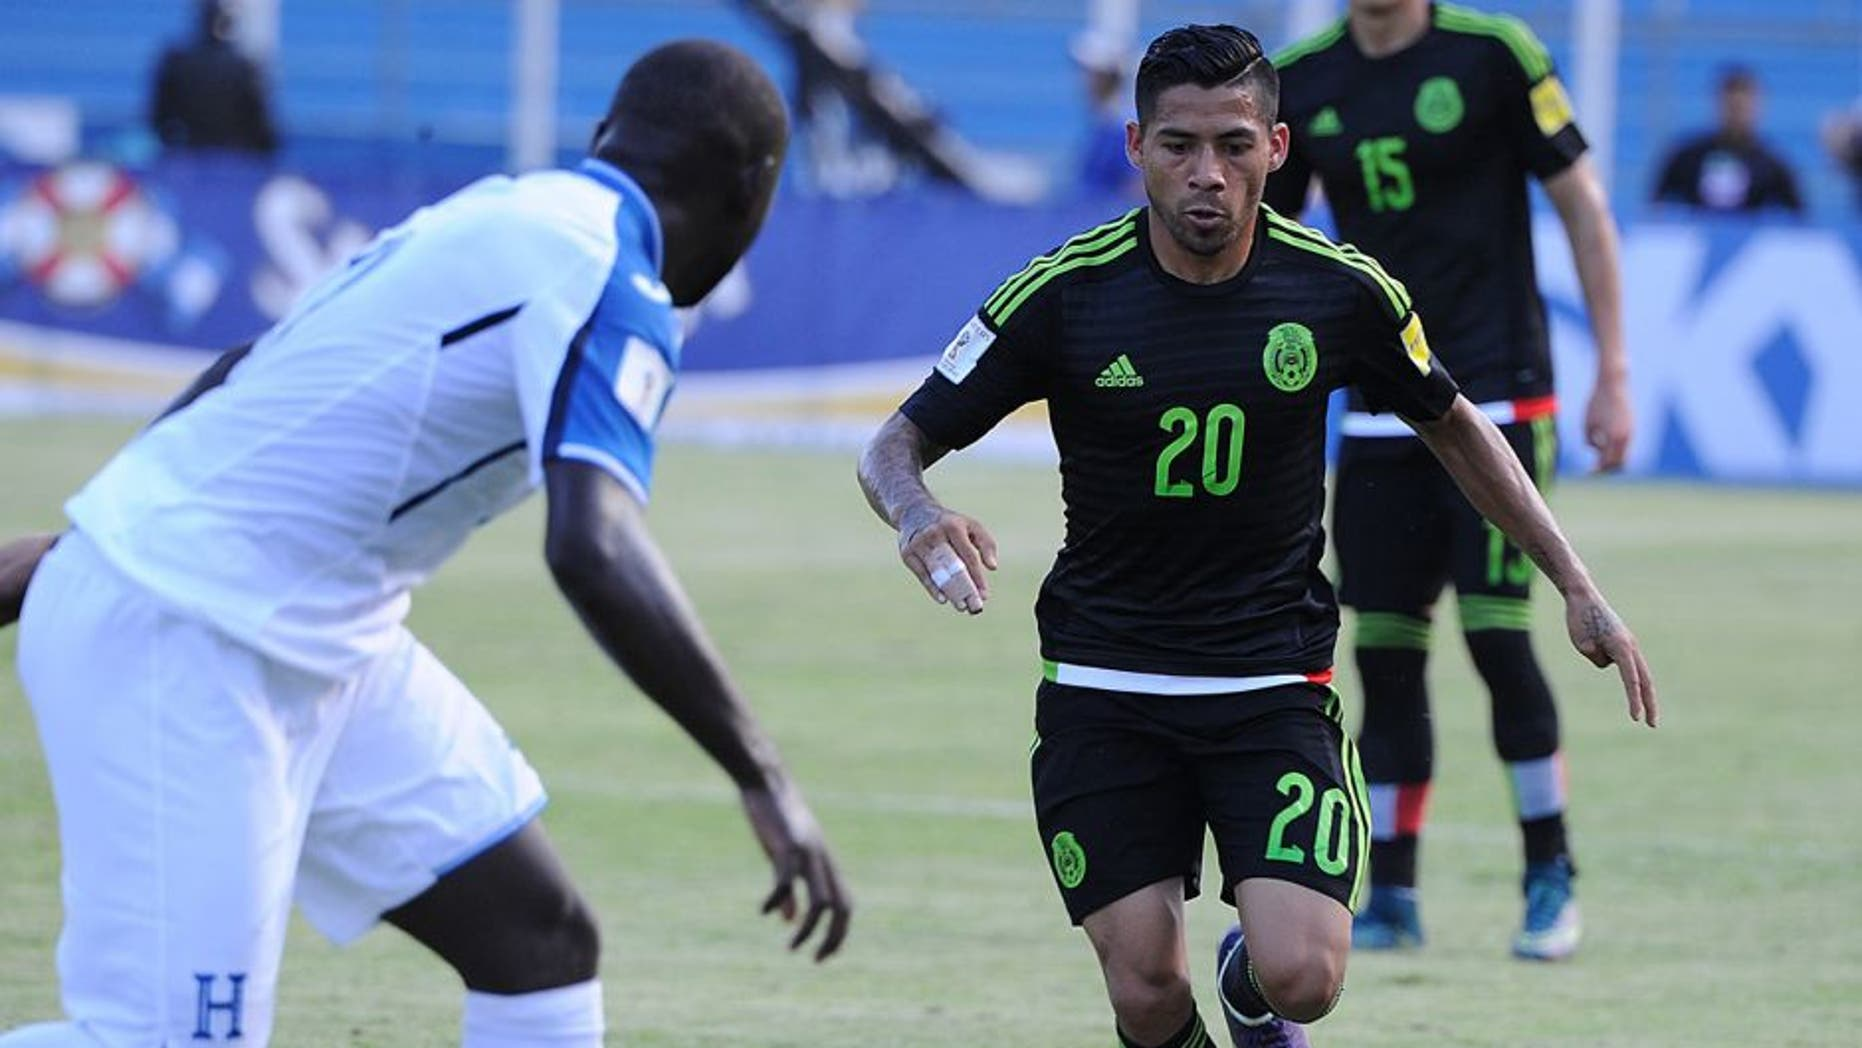 Honduras' Wilmer Crisanto (L) and Mexico's Javier Aquino vie for the ball during the Russia 2018 FIFA World Cup Concacaf Qualifiers football match, in San Pedro Sula, on November 17, 2015. AFP PHOTO / ORLANDO SIERRA (Photo credit should read ORLANDO SIERRA/AFP/Getty Images)